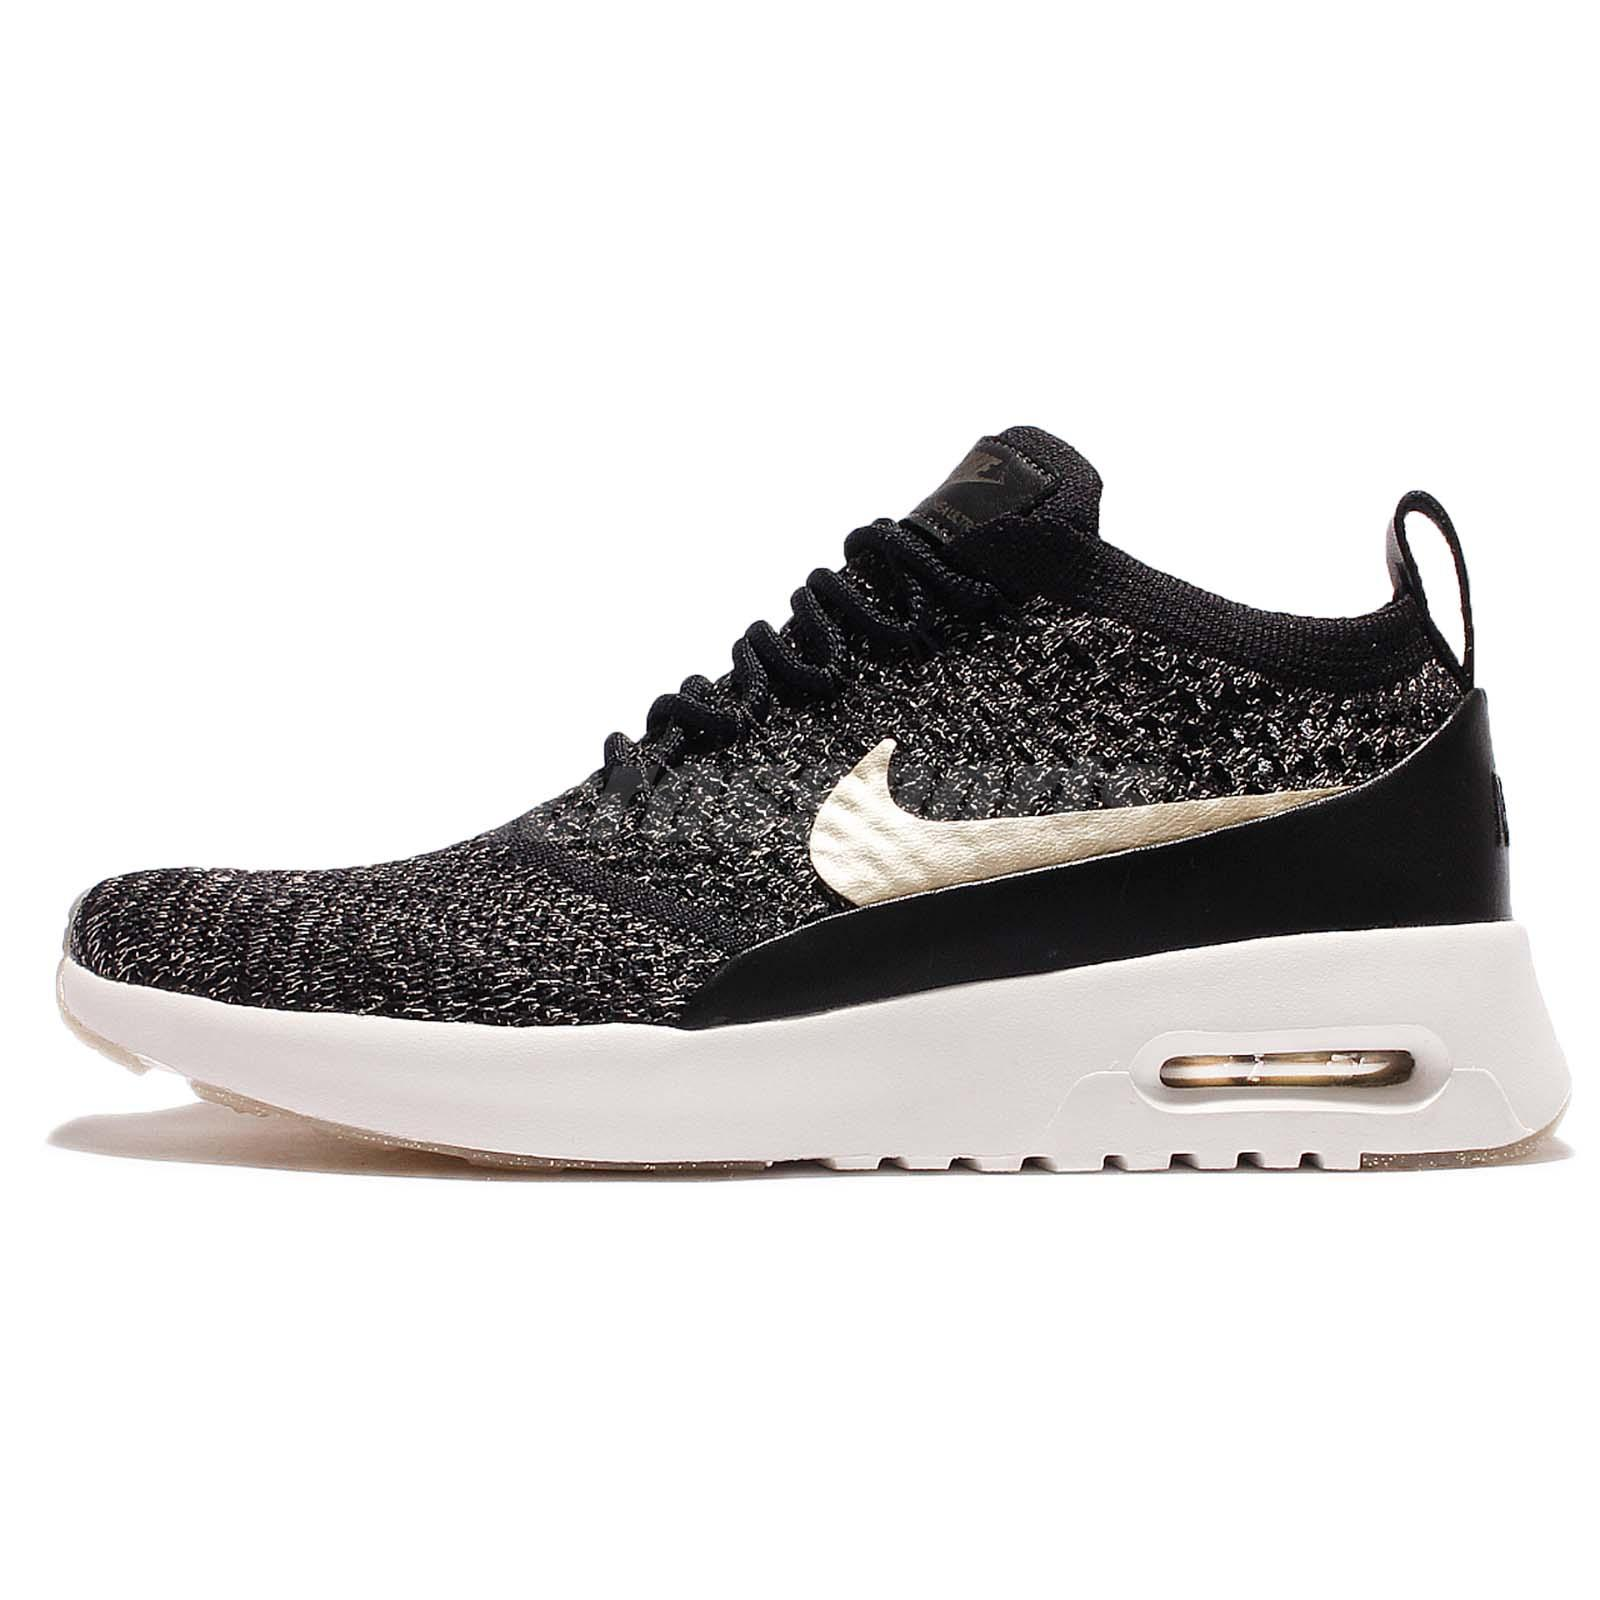 Wmns Nike Air Max Thea Ultra FK MTLC Flyknit Metallic Gold Pack Women  881564-001